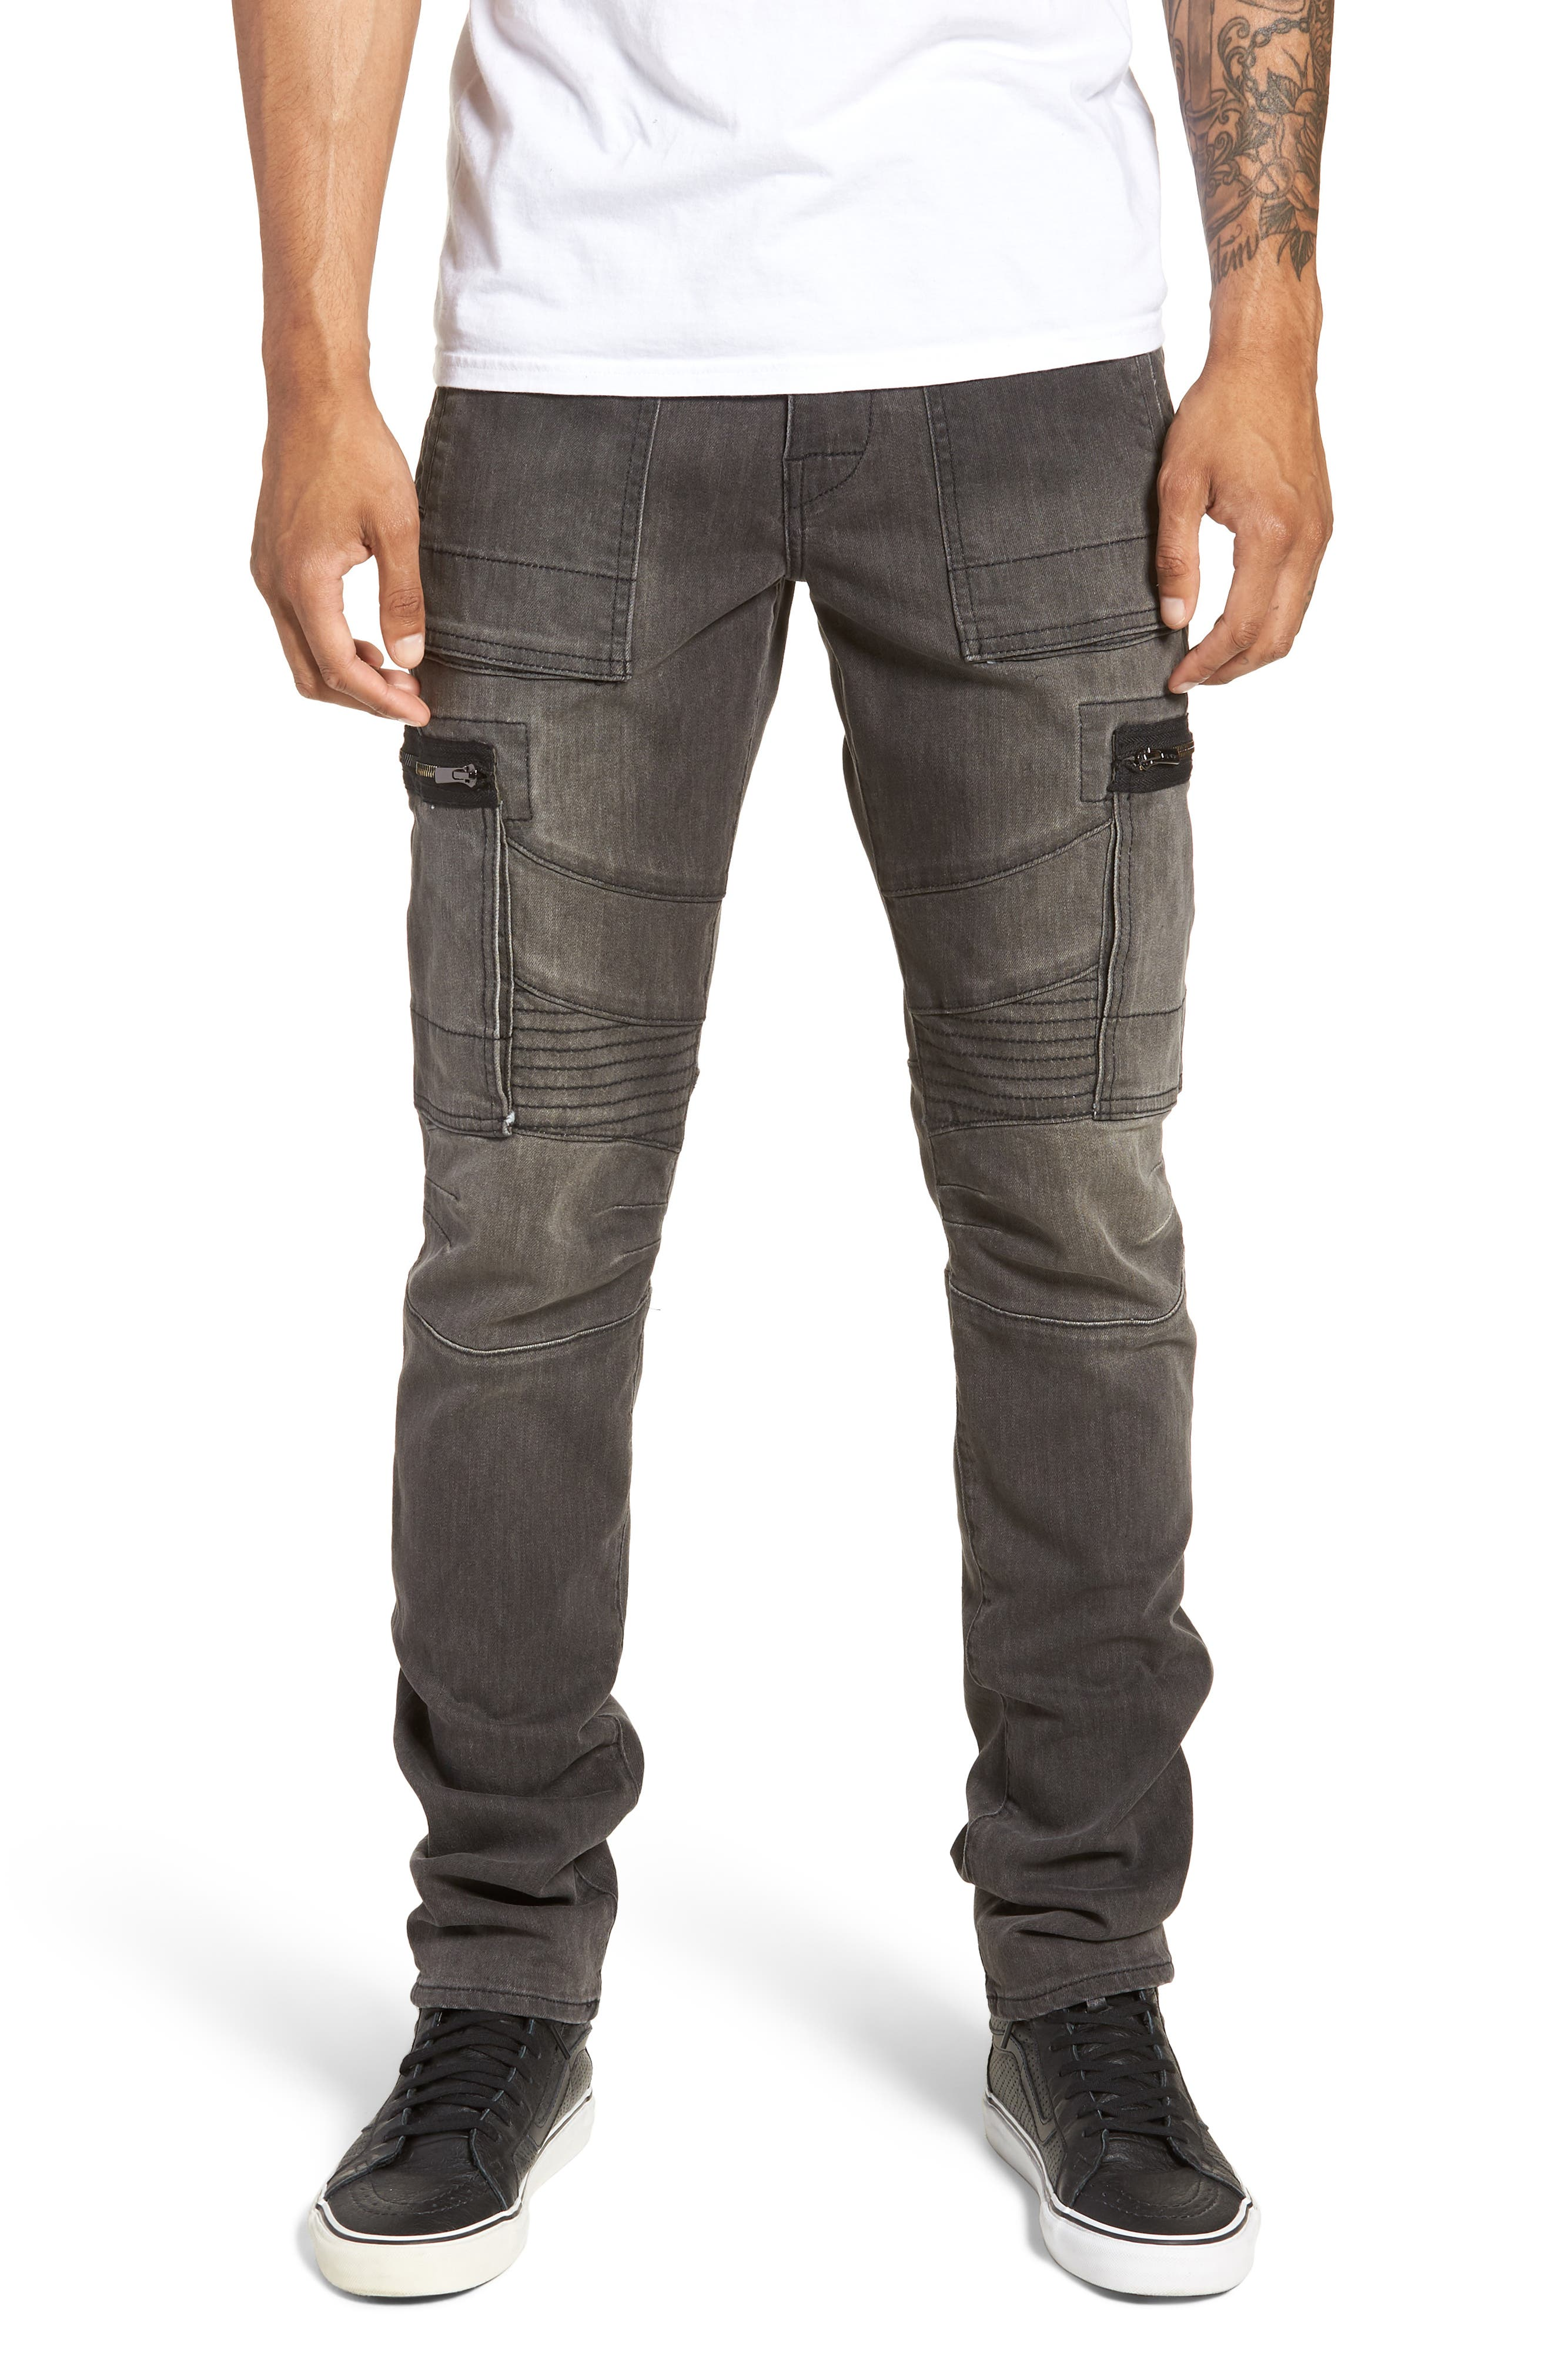 Nomad Straight Leg Jeans,                         Main,                         color, VOLCANIC ROCK